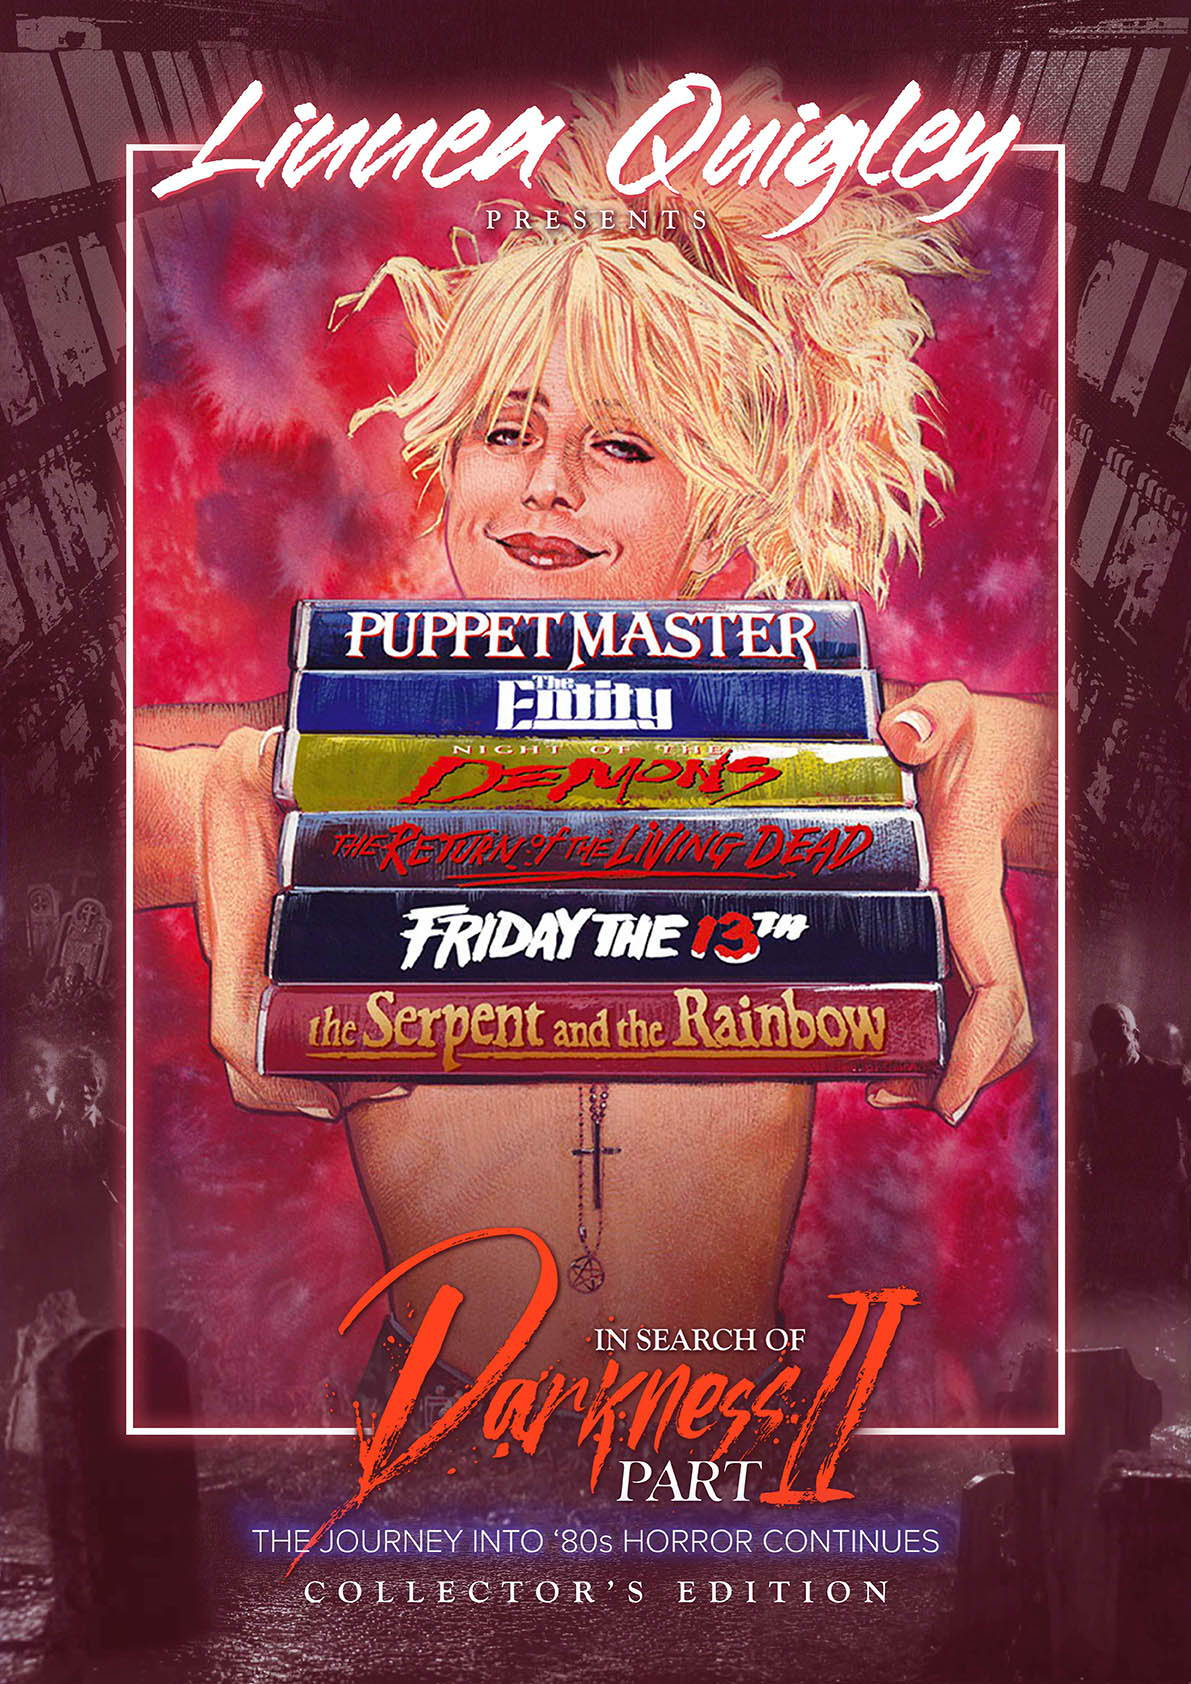 In Search of Darkness Part II, Linnea Quigley Collector's Edition poster